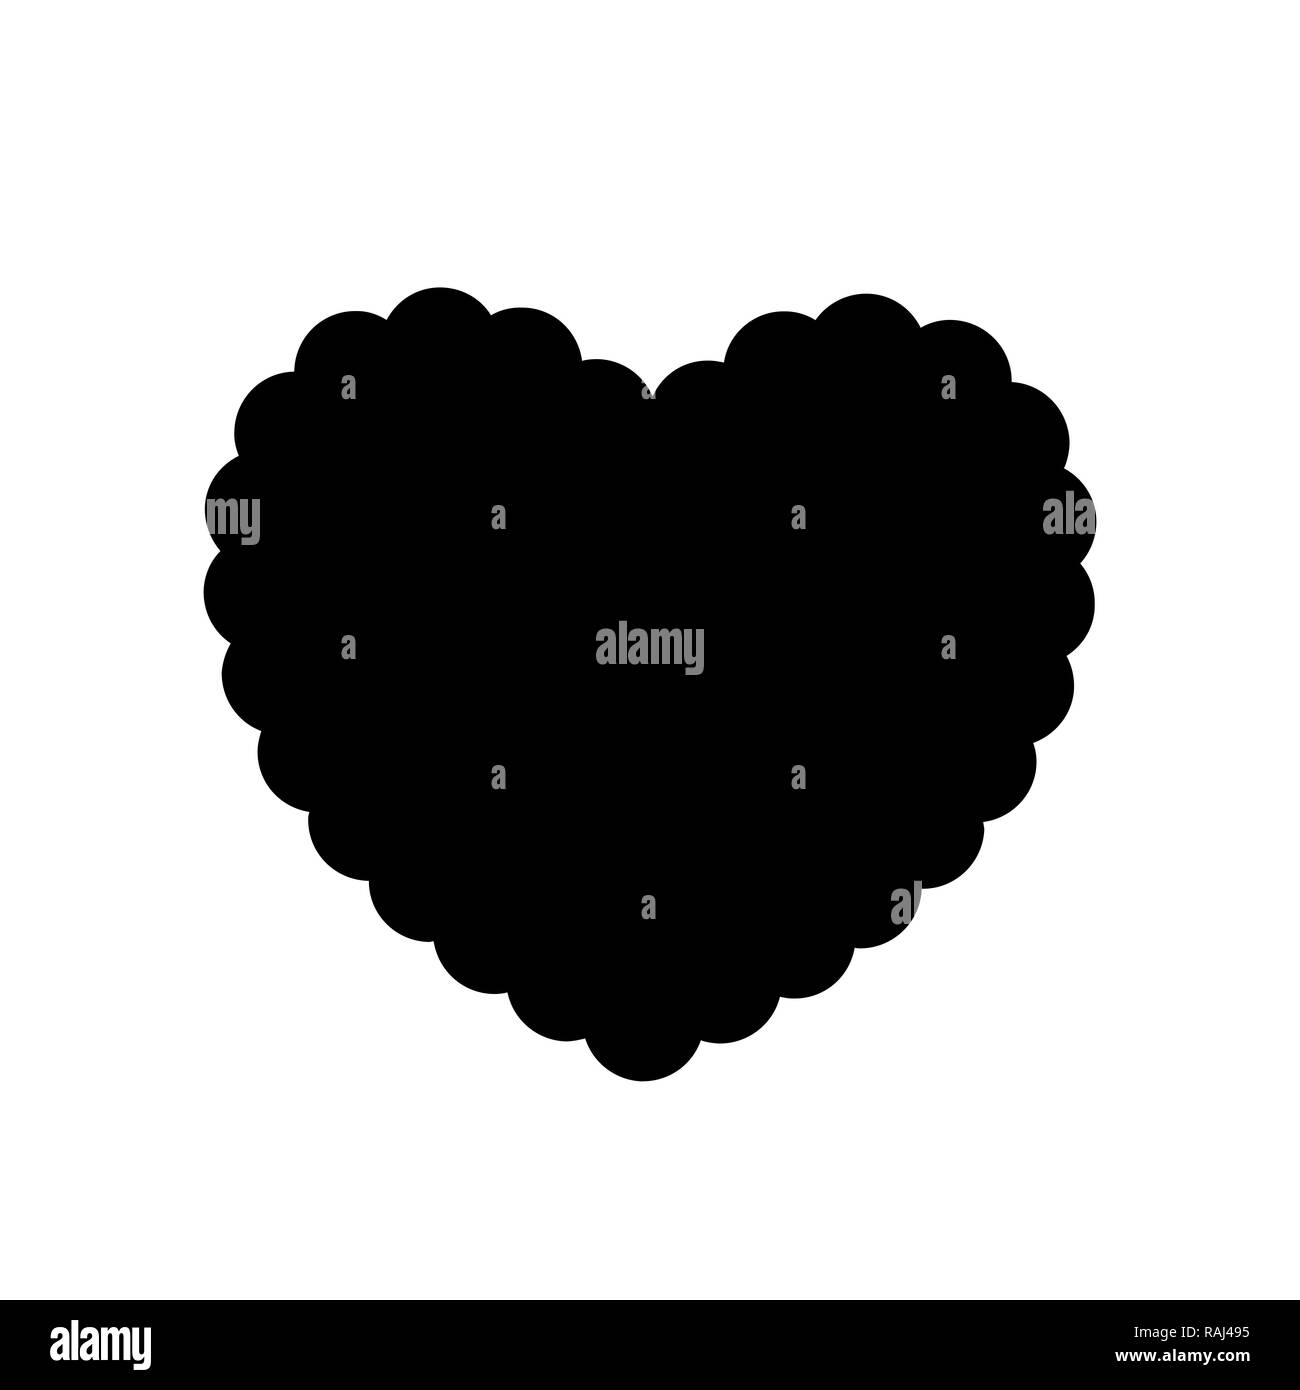 Black silhouette of wavy heart isolated on white background. Monochrome   illustration, symbol, sign, icon, clip art. - Stock Image